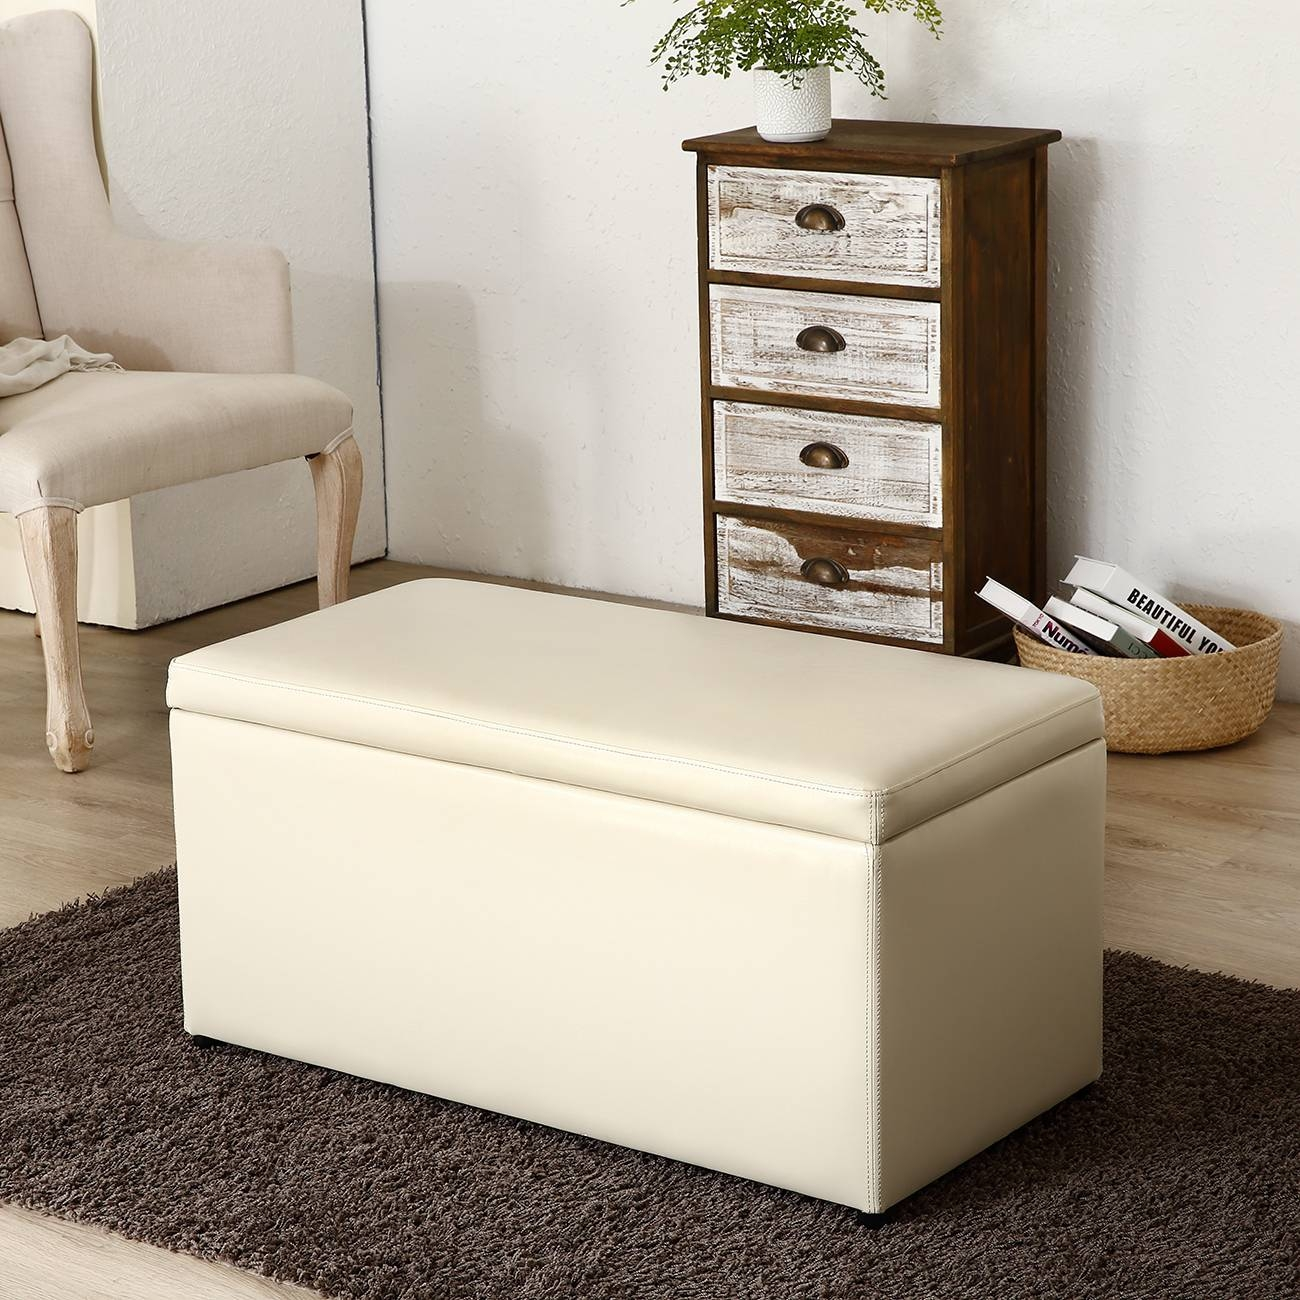 3Pc Ottoman Bench Storage Lid Tray Footrest Coffee Table Black regarding Coffee Table Footrests (Image 5 of 30)